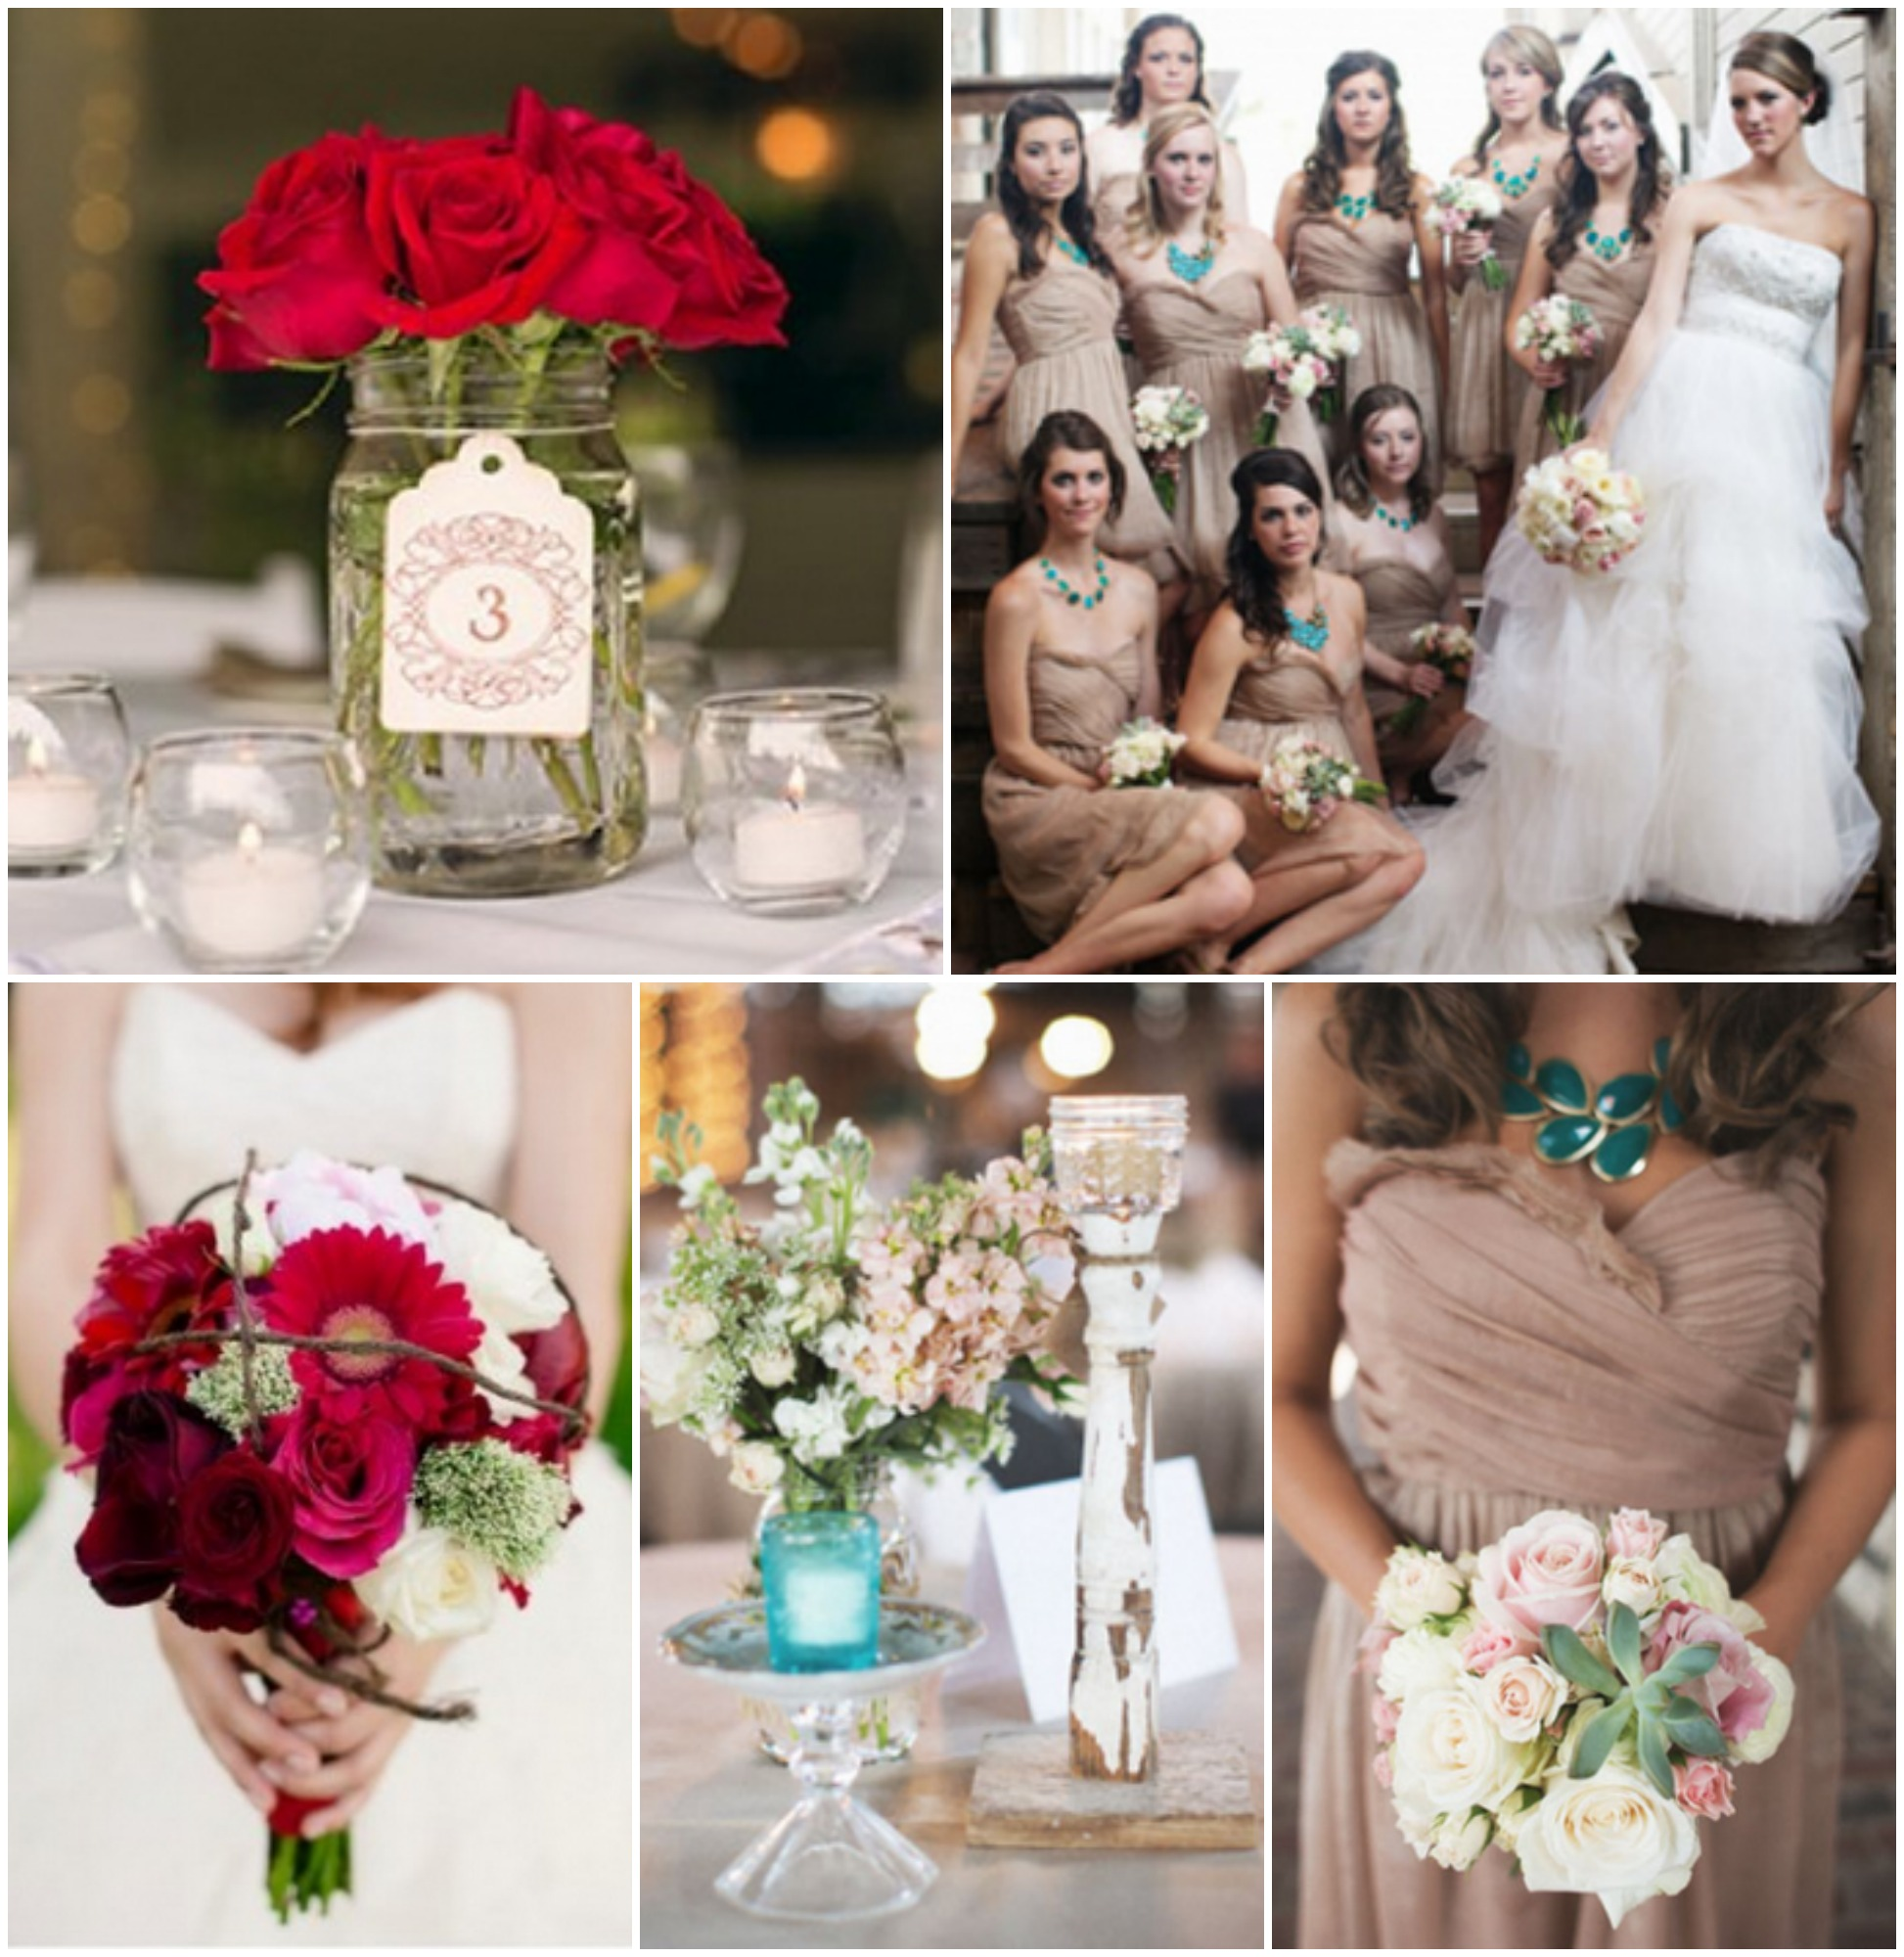 Wedding Red And White Theme: Blue, Red & Cream Wedding Color Inspiration